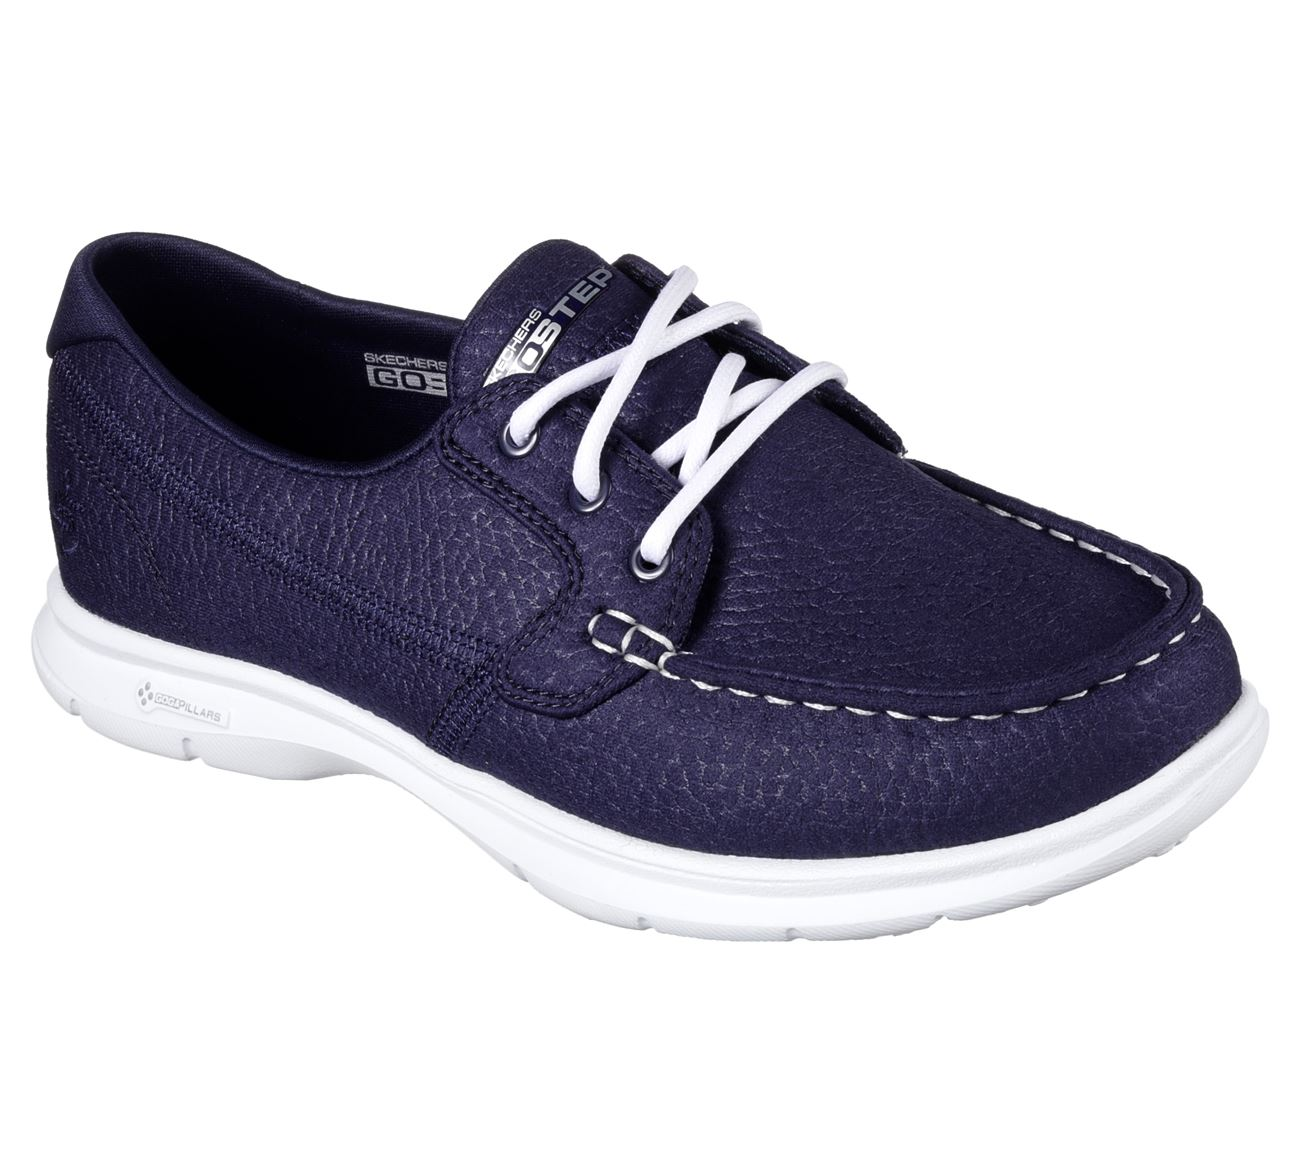 Skechers Go Step Shoes Women